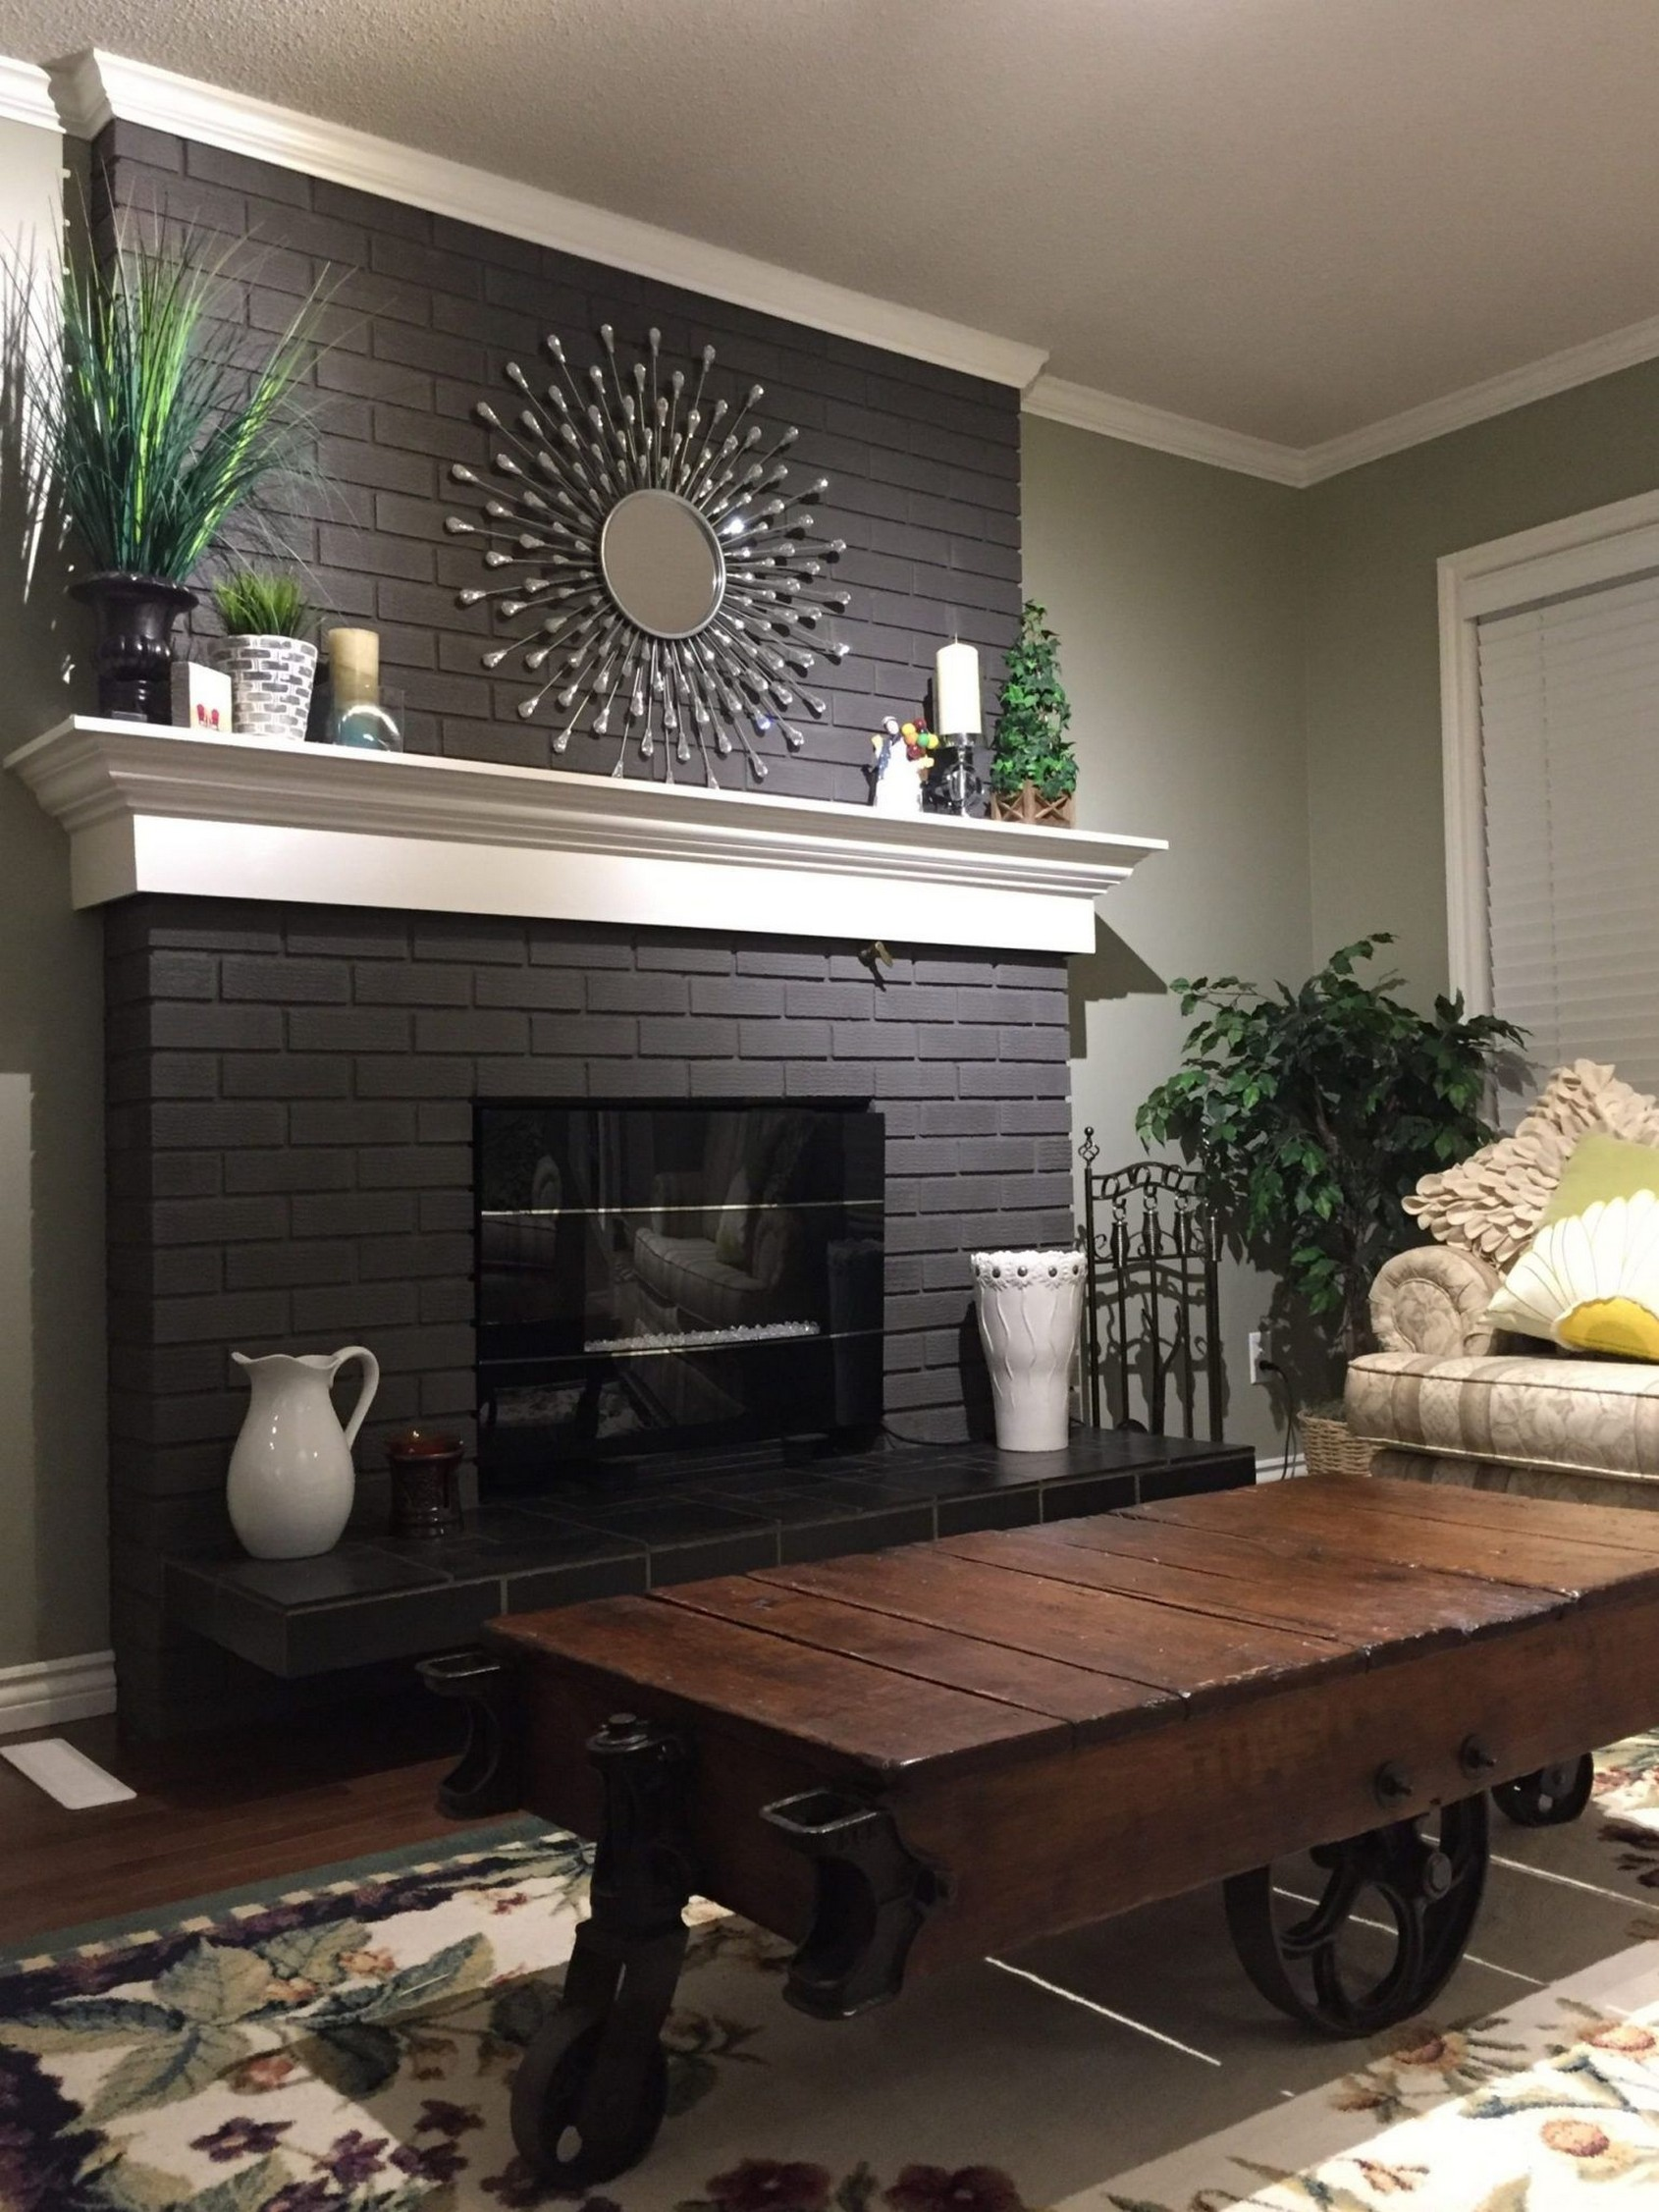 76 Stone Fireplaces The Hearth Is The Heart of The Home 11